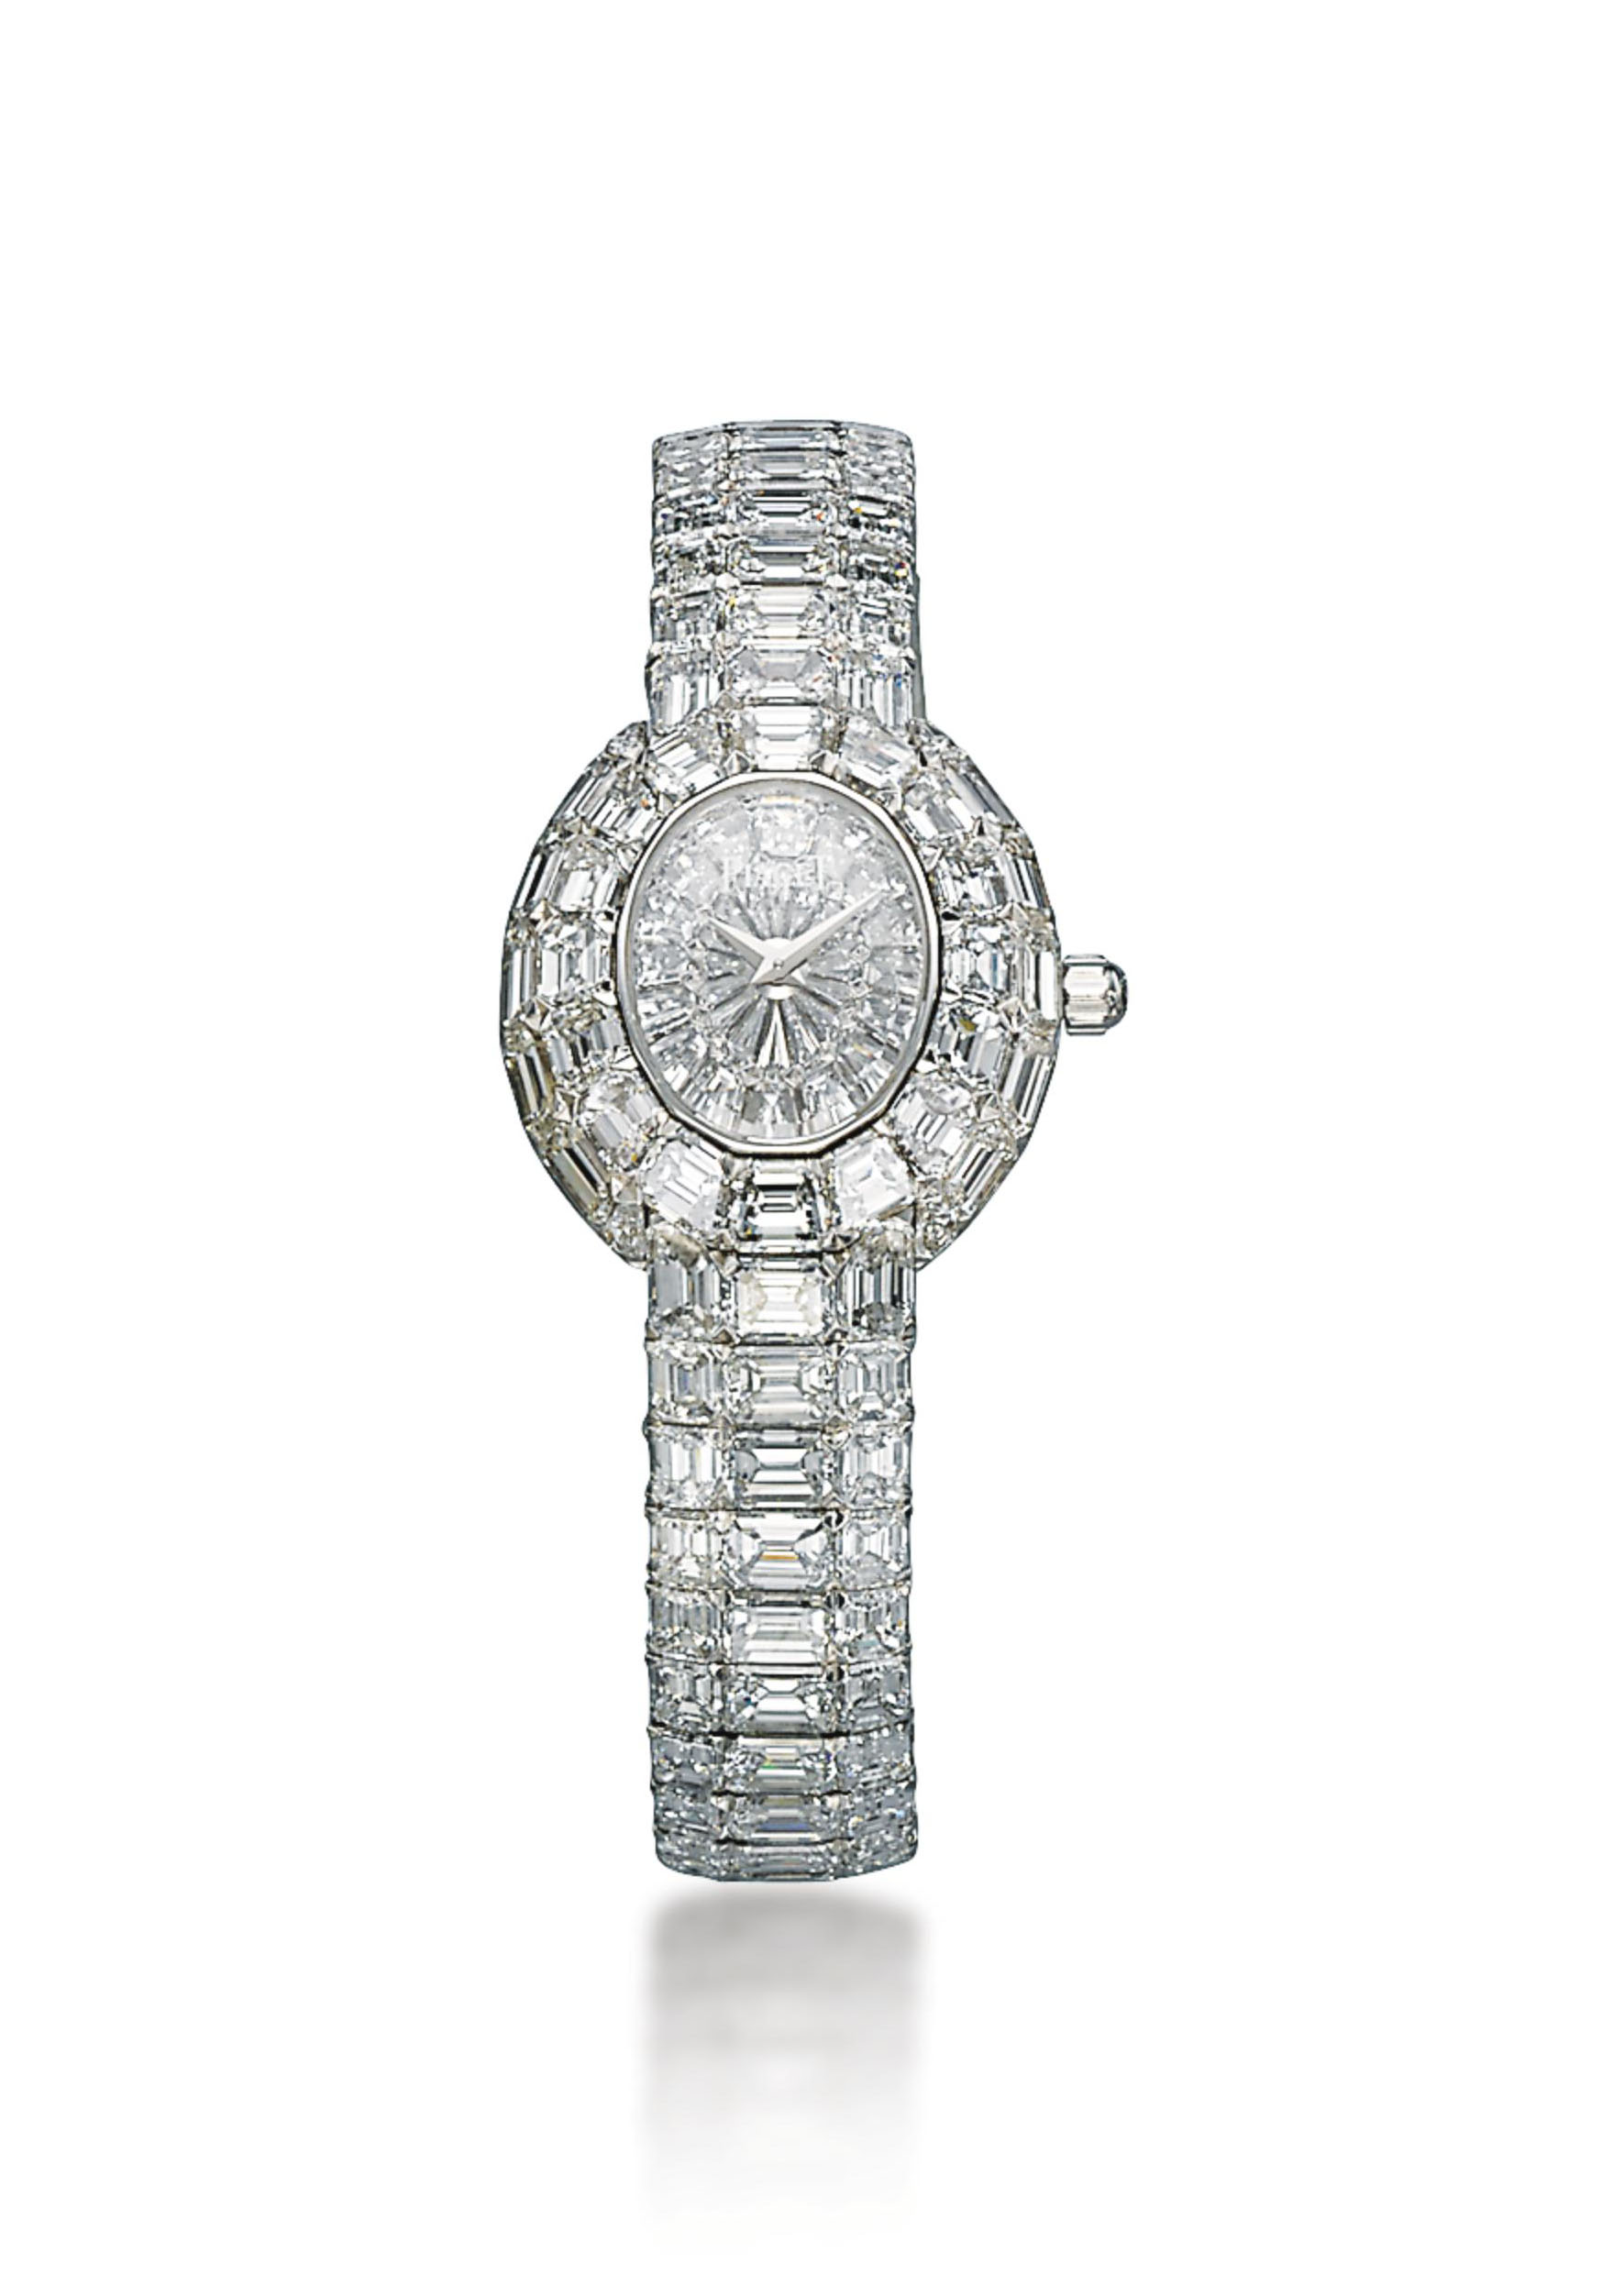 A LADY'S DIAMOND 'KANTHARA' BRACELET-WATCH, BY PIAGET